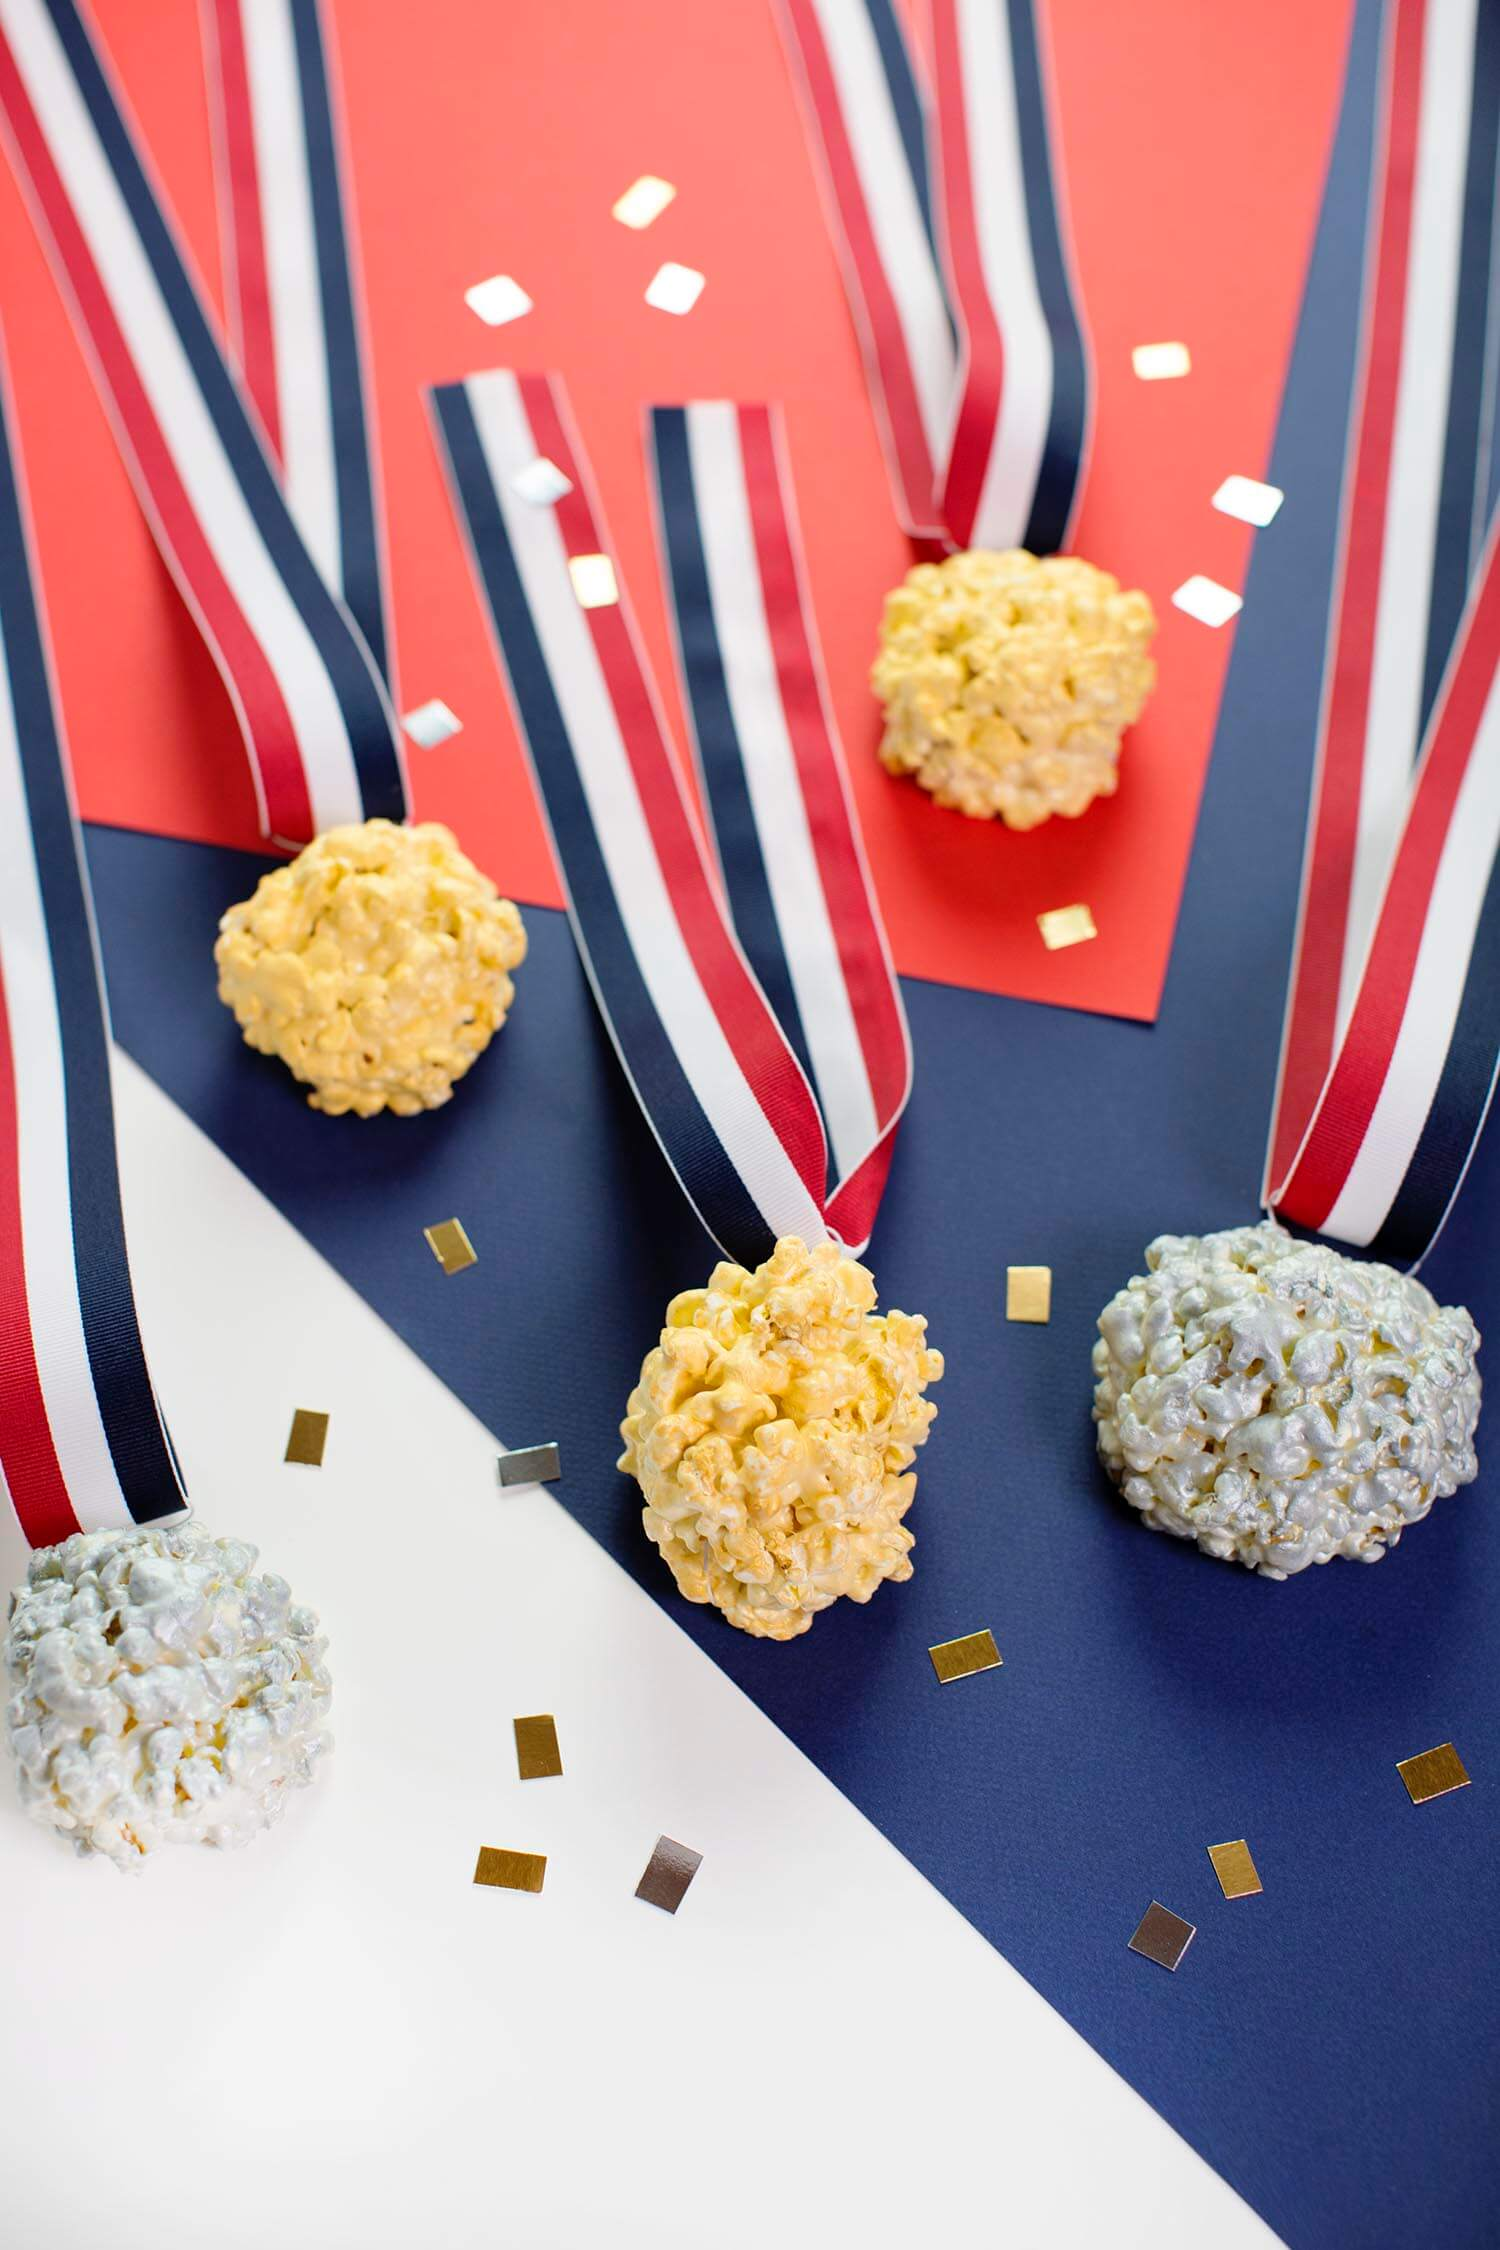 Olympic Medal Popcorn Balls (via fitness-4all.com)